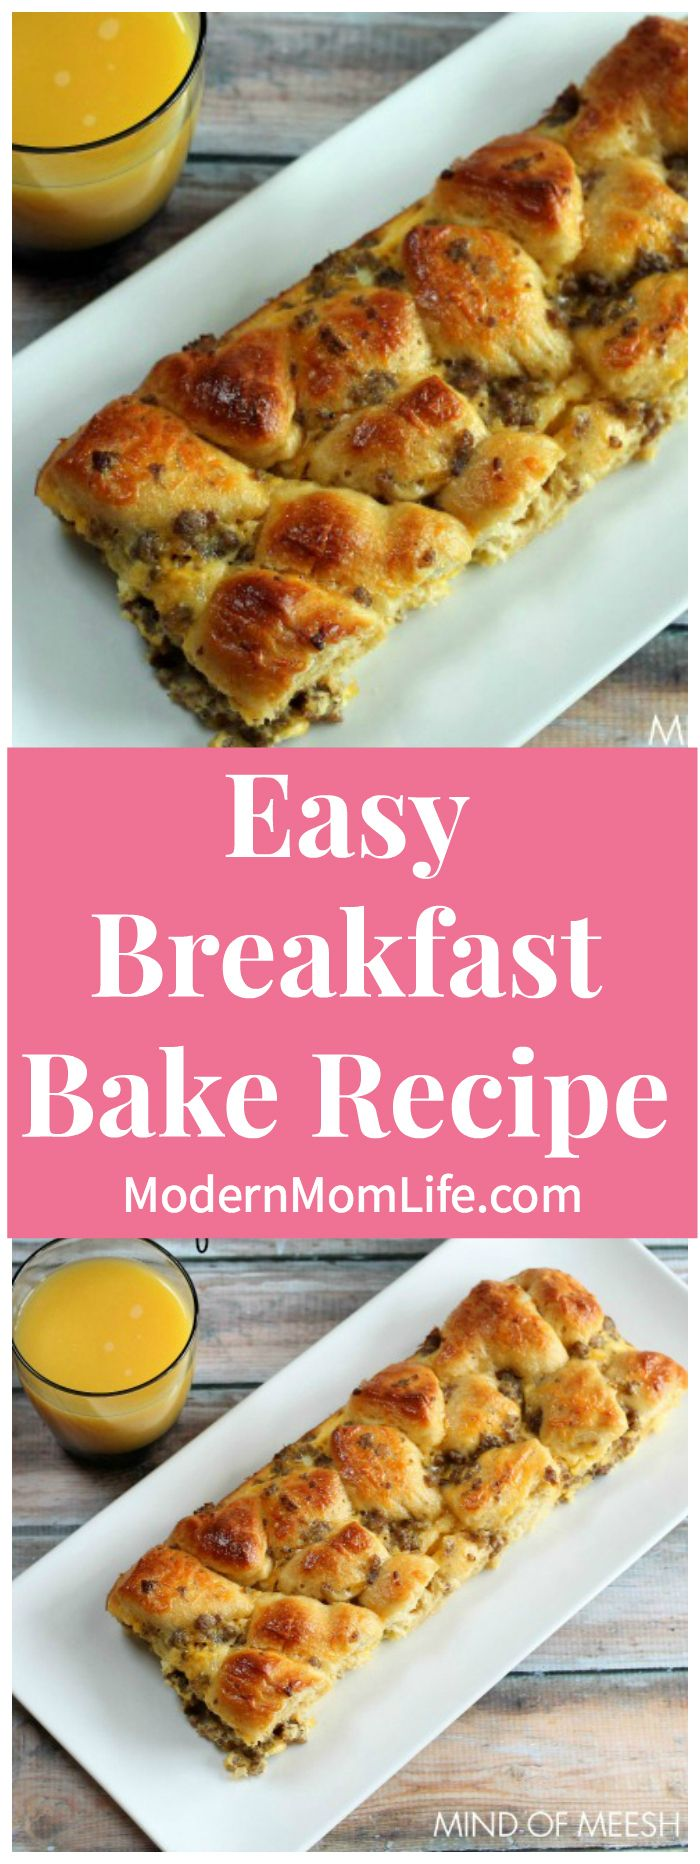 This Easy Breakfast Bake Recipe is sure to please the entire family. My kids can't get enough of this breakfast dish. via @amodernmomlife